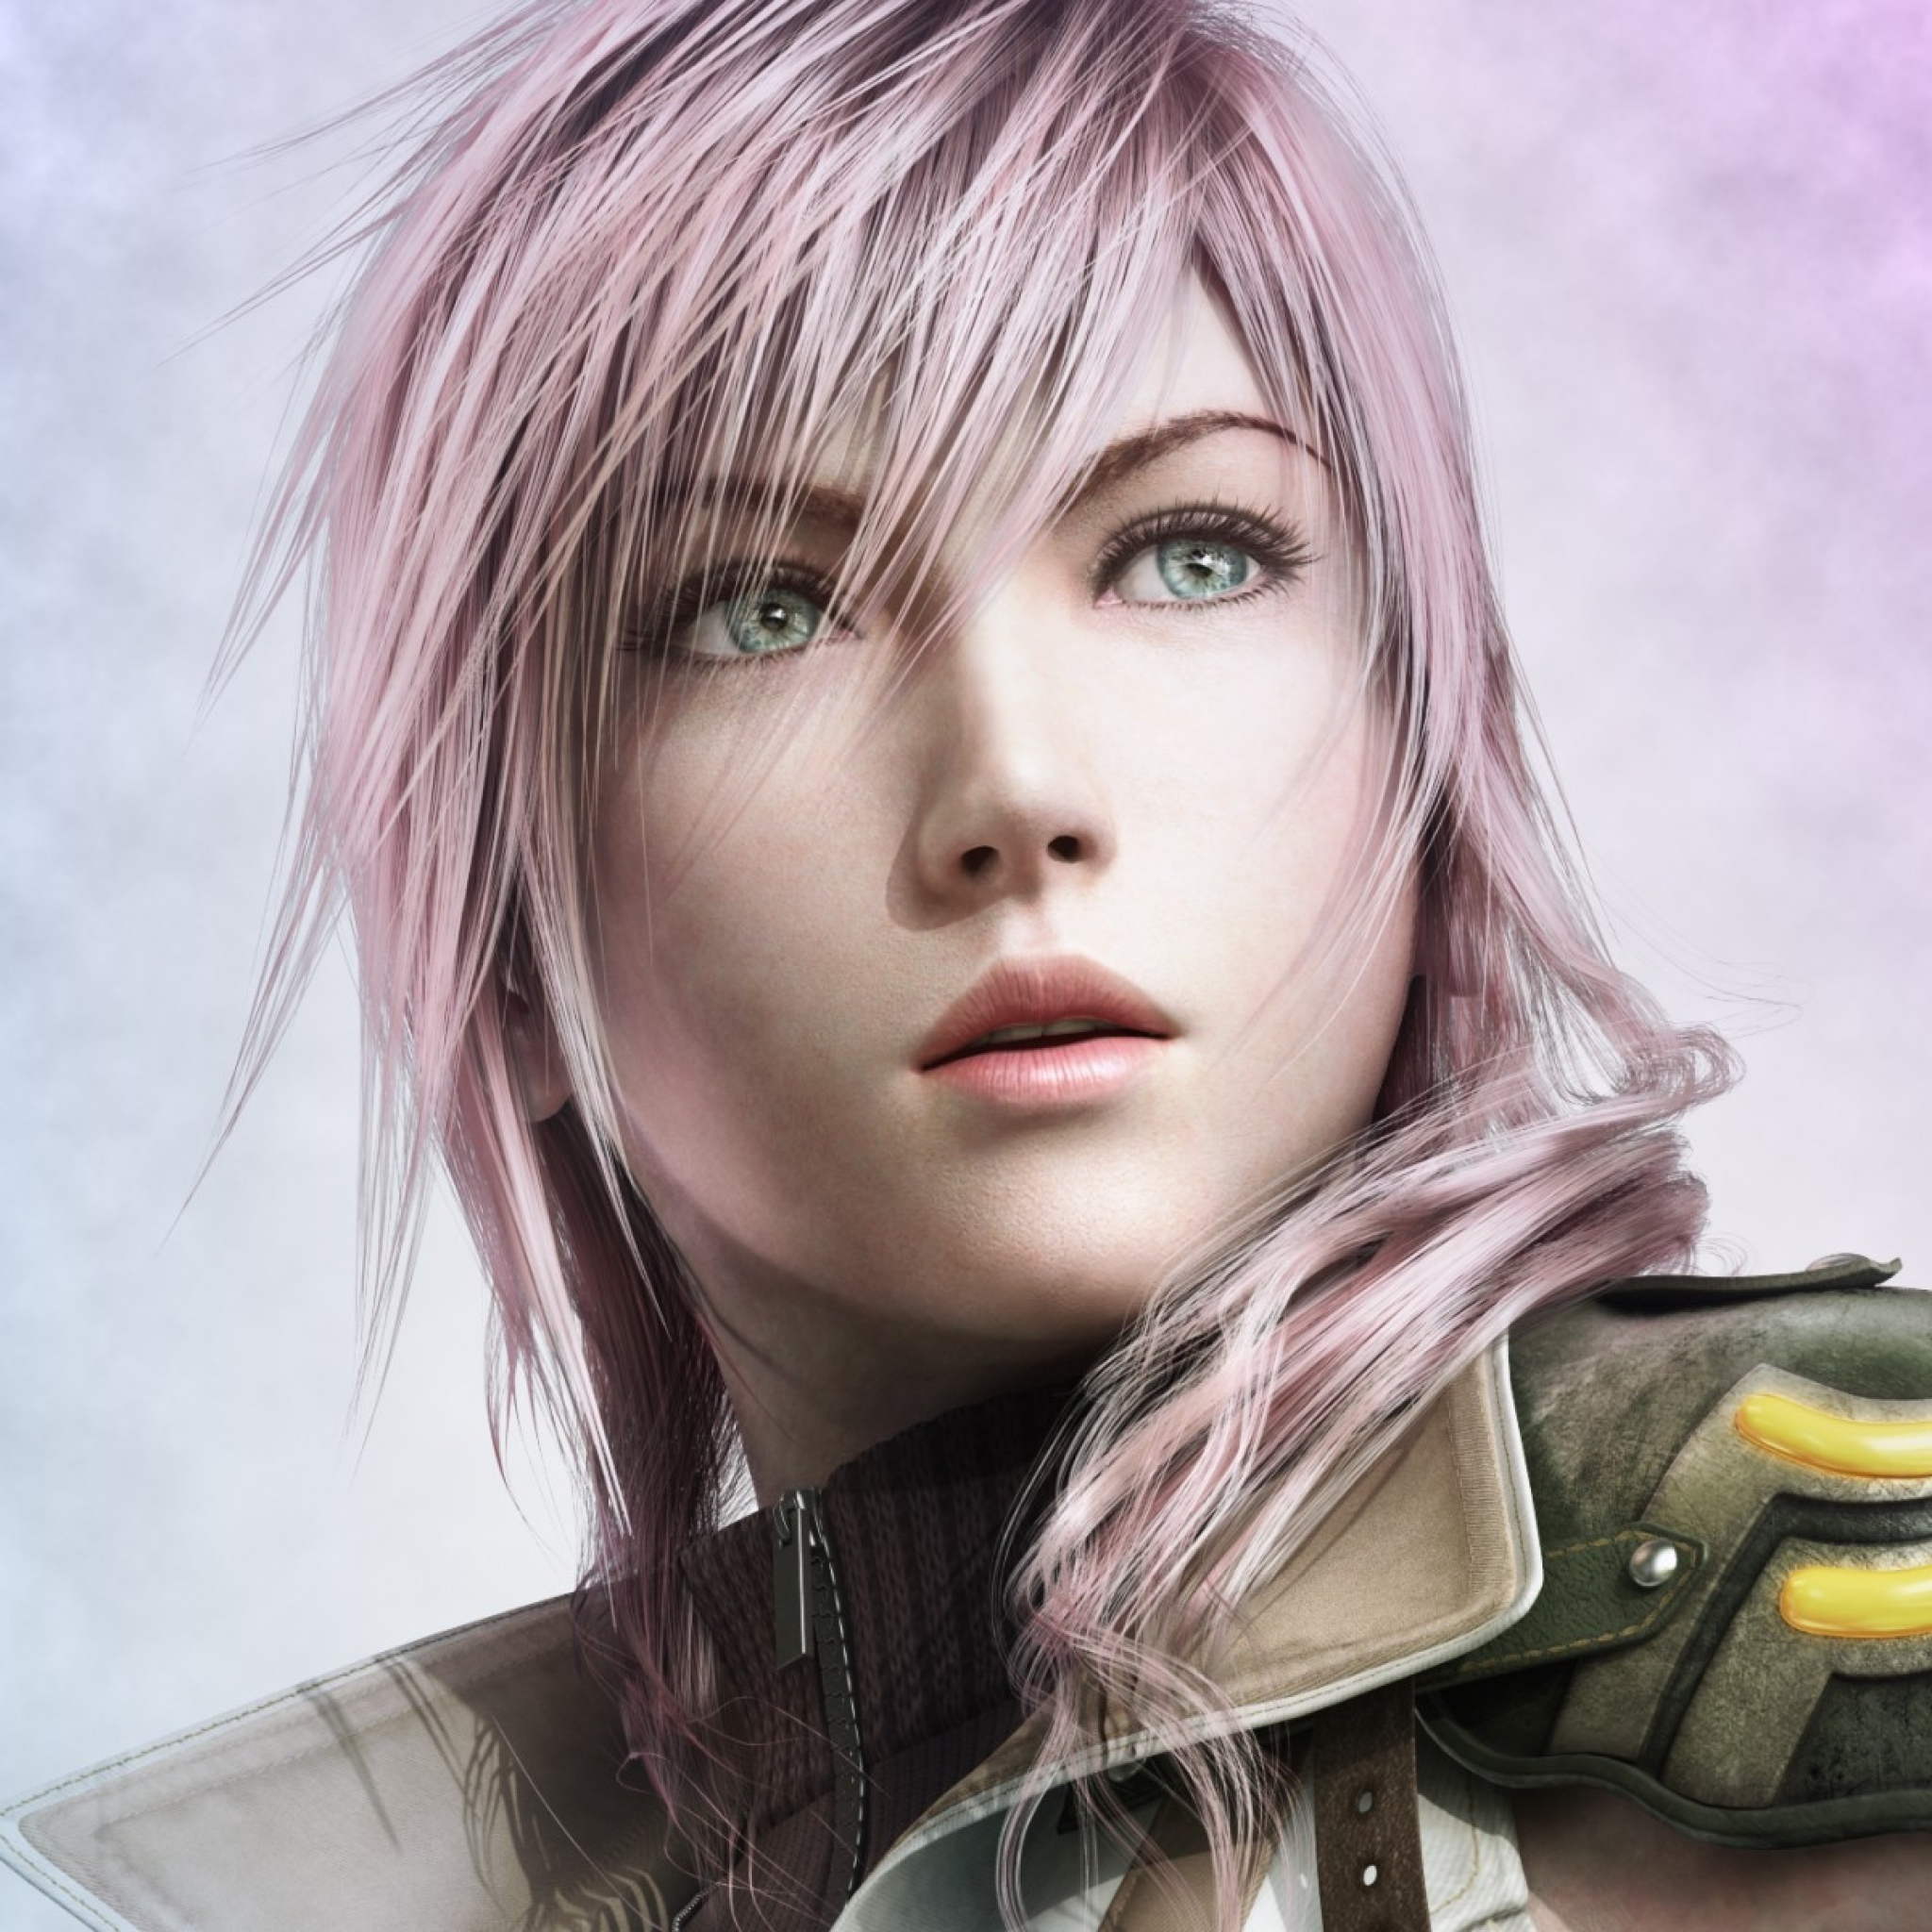 final fantasy 13 crystarium guide for character